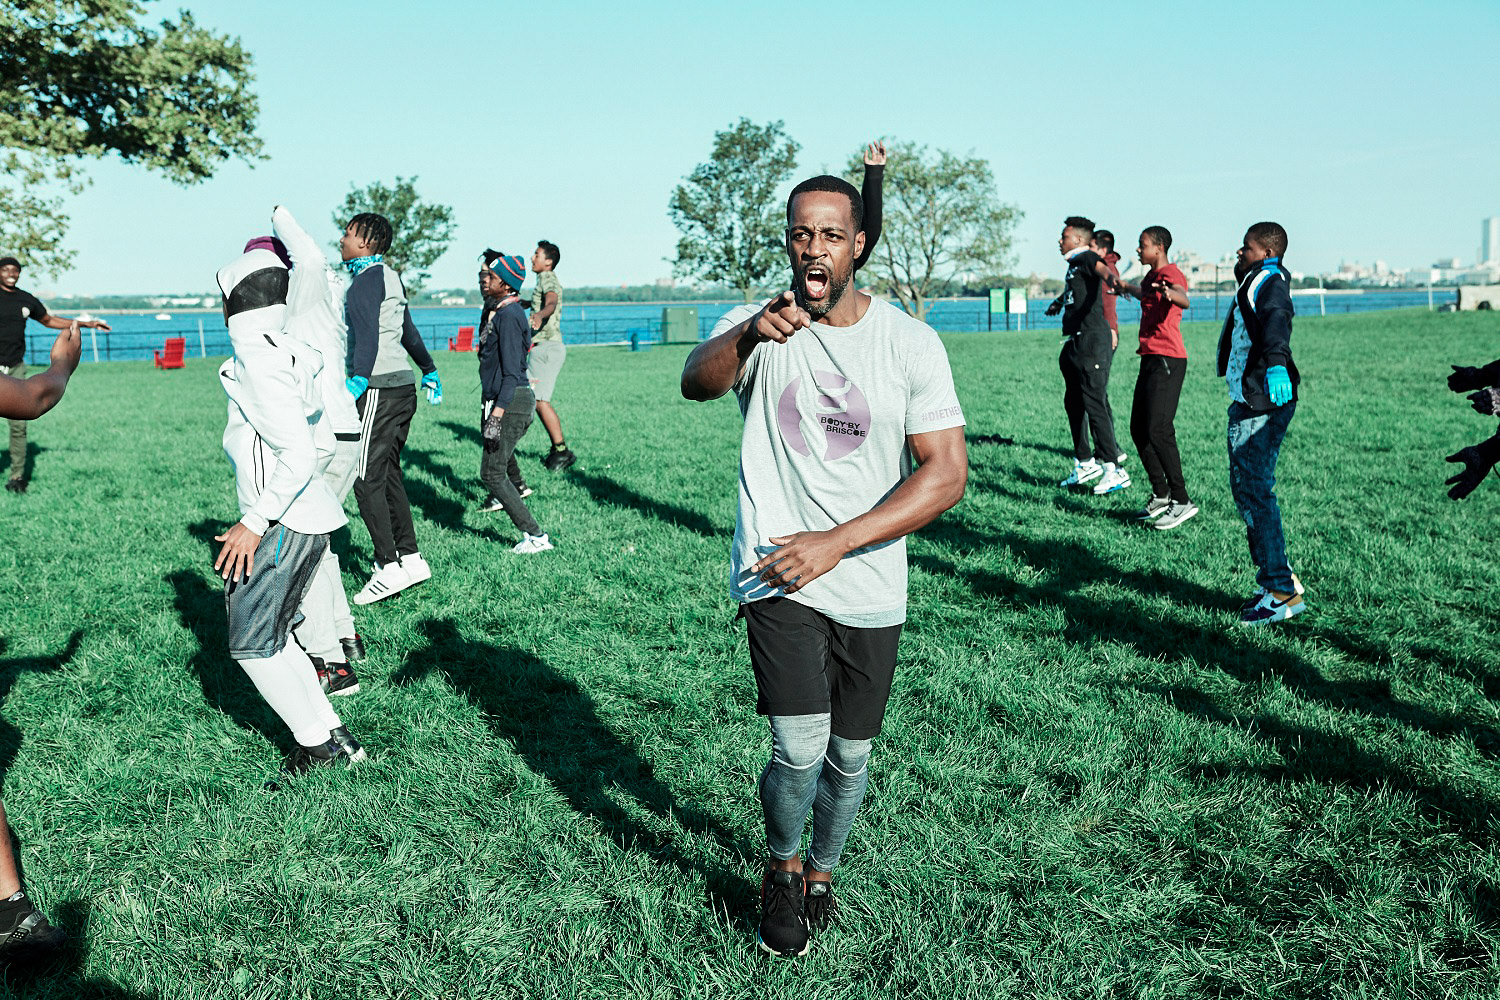 Marlon Briscoe conducts an outdoor bootcamp session